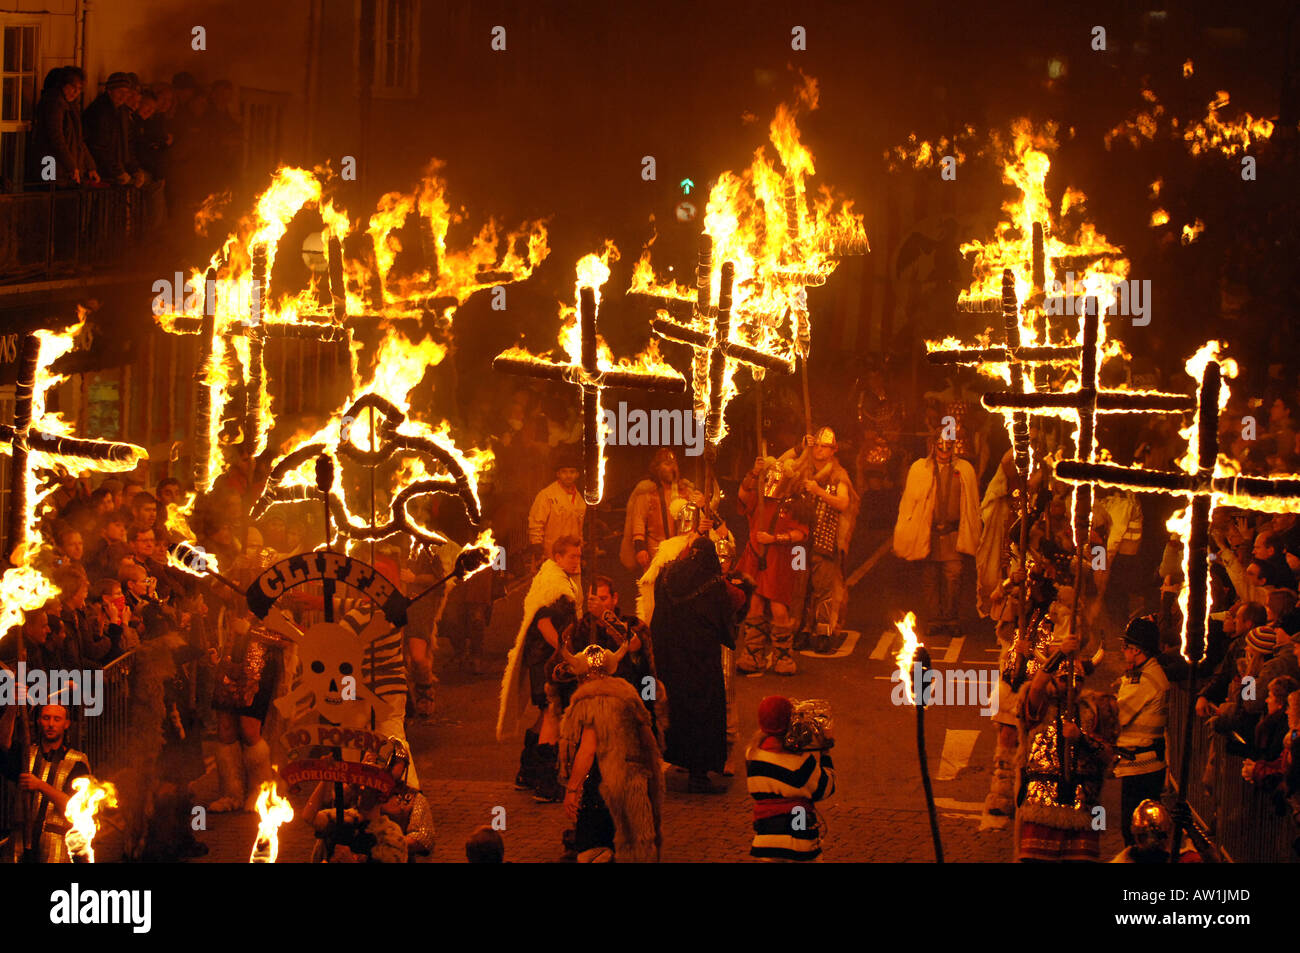 Breathtaking Photos Burning Crosses Form Part Of A Breathtaking Parade Of Fire And